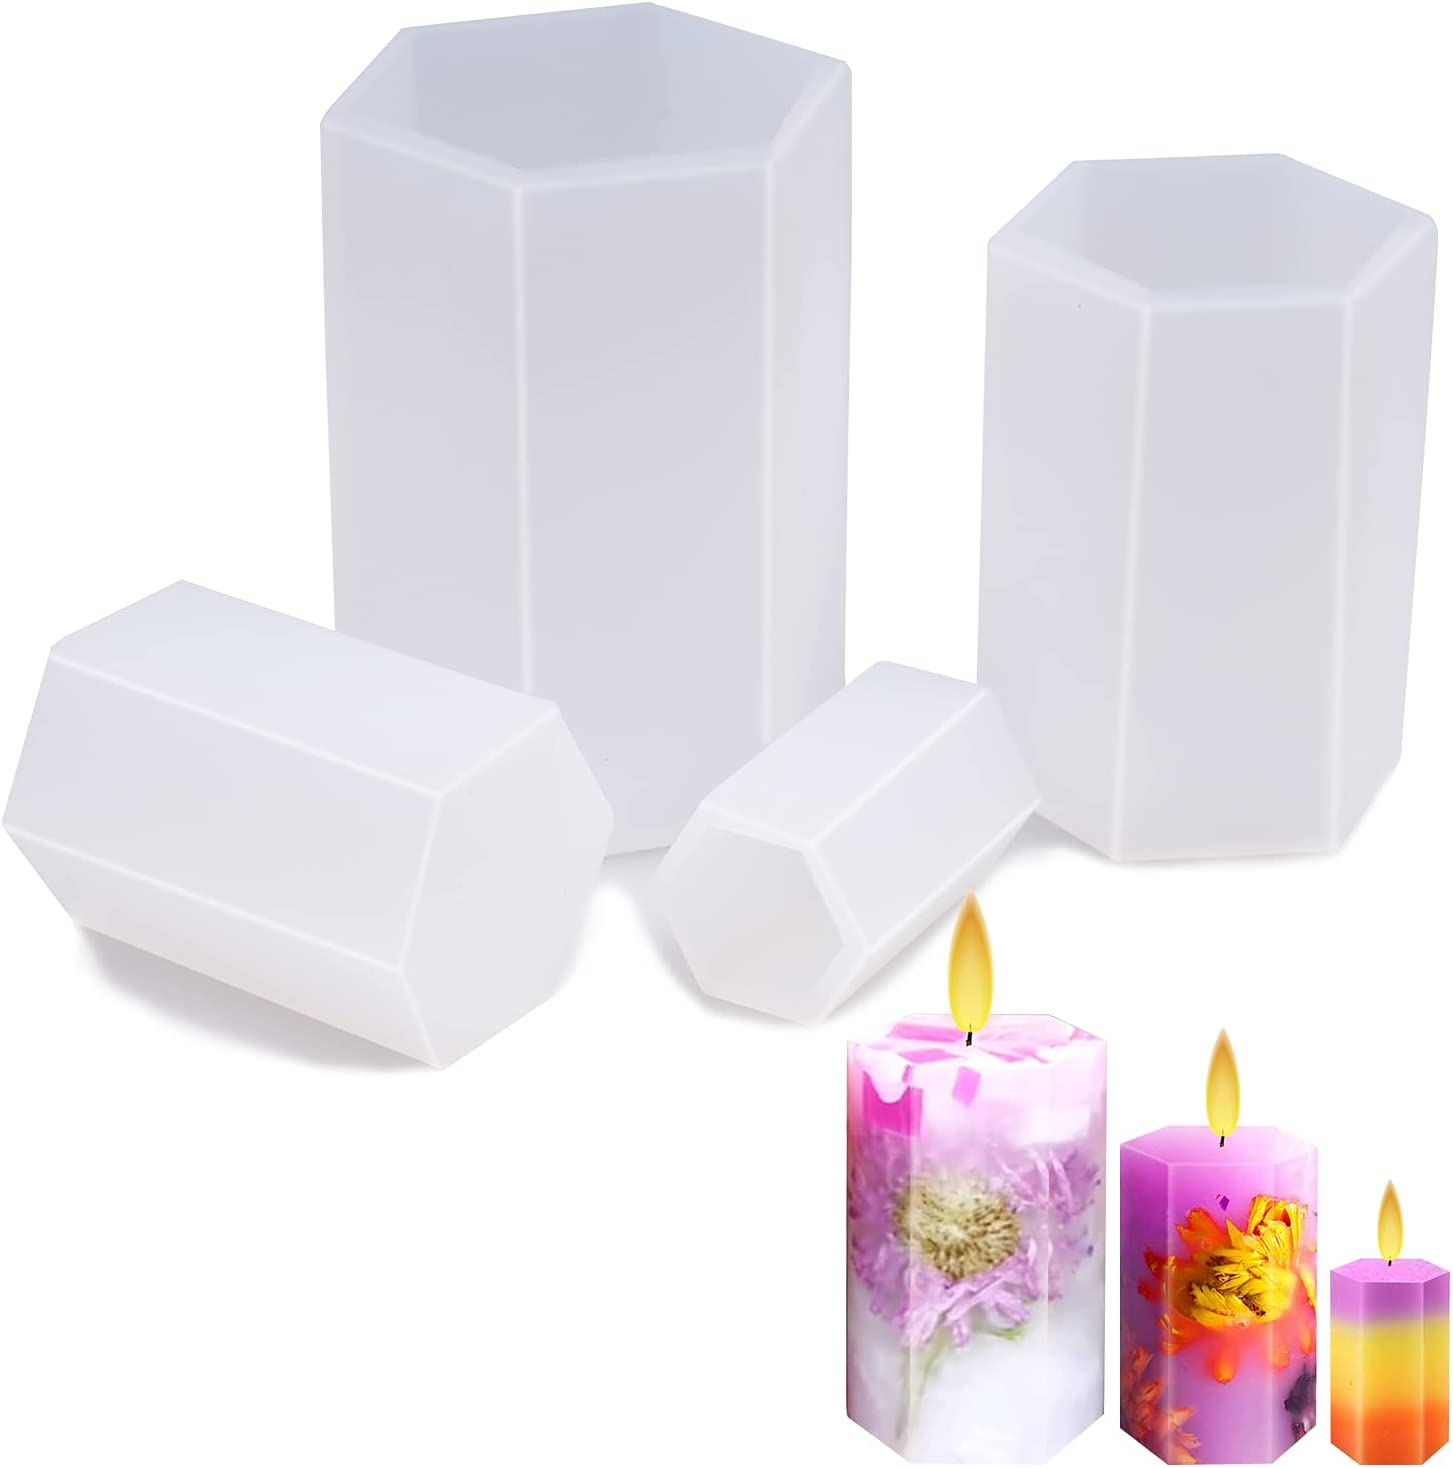 Doris 4 Pcs Silicone Clearance SALE! Limited time! Candle Special price Making Upgr Molds for -